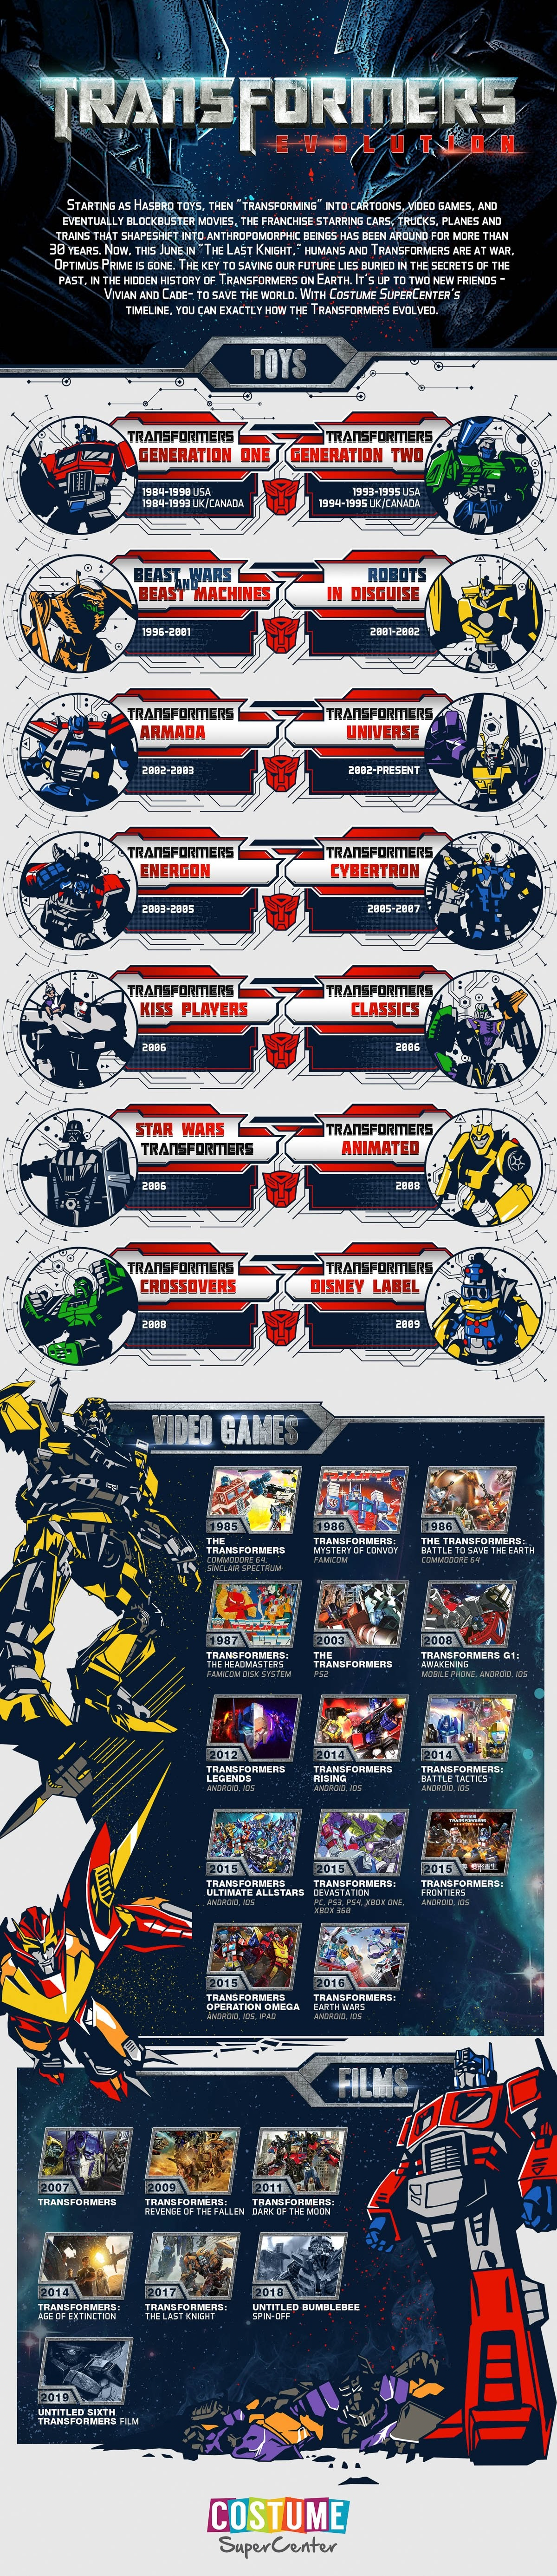 Evolution of the Transformers #Infographic